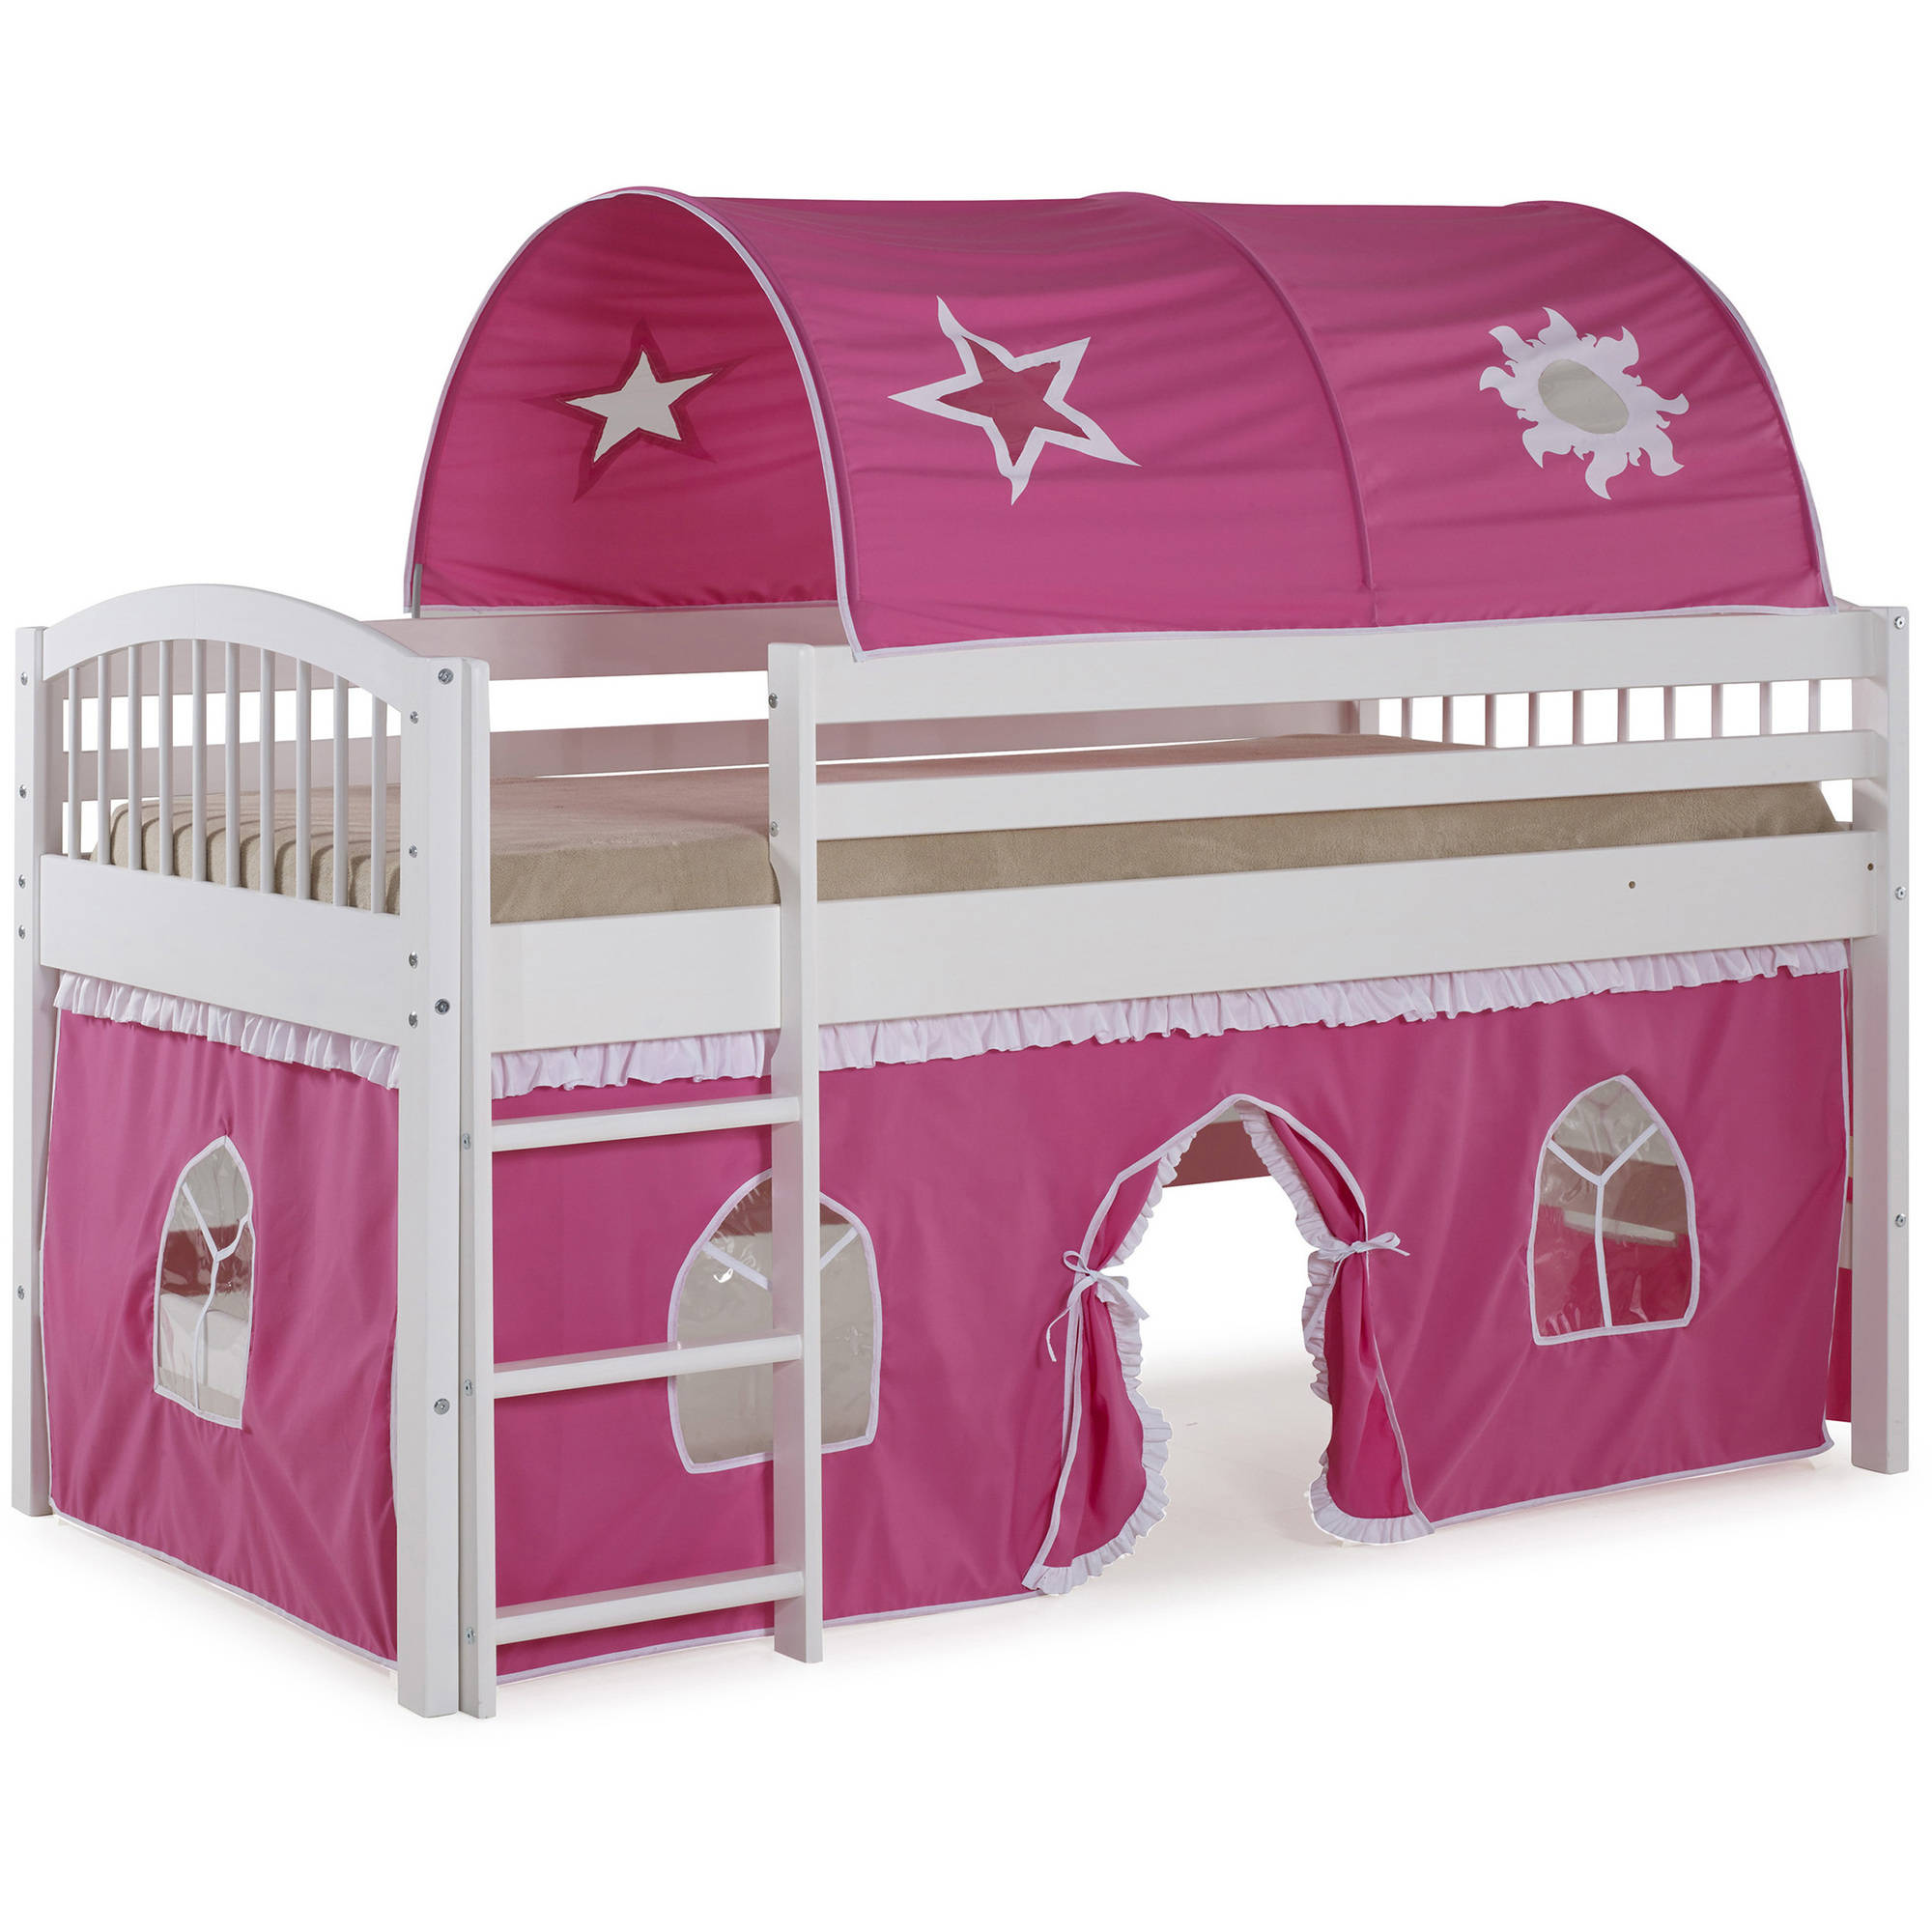 Addison White Junior Loft Bed, Pink and White Tent and Playhouse with White Trim by Alaterre